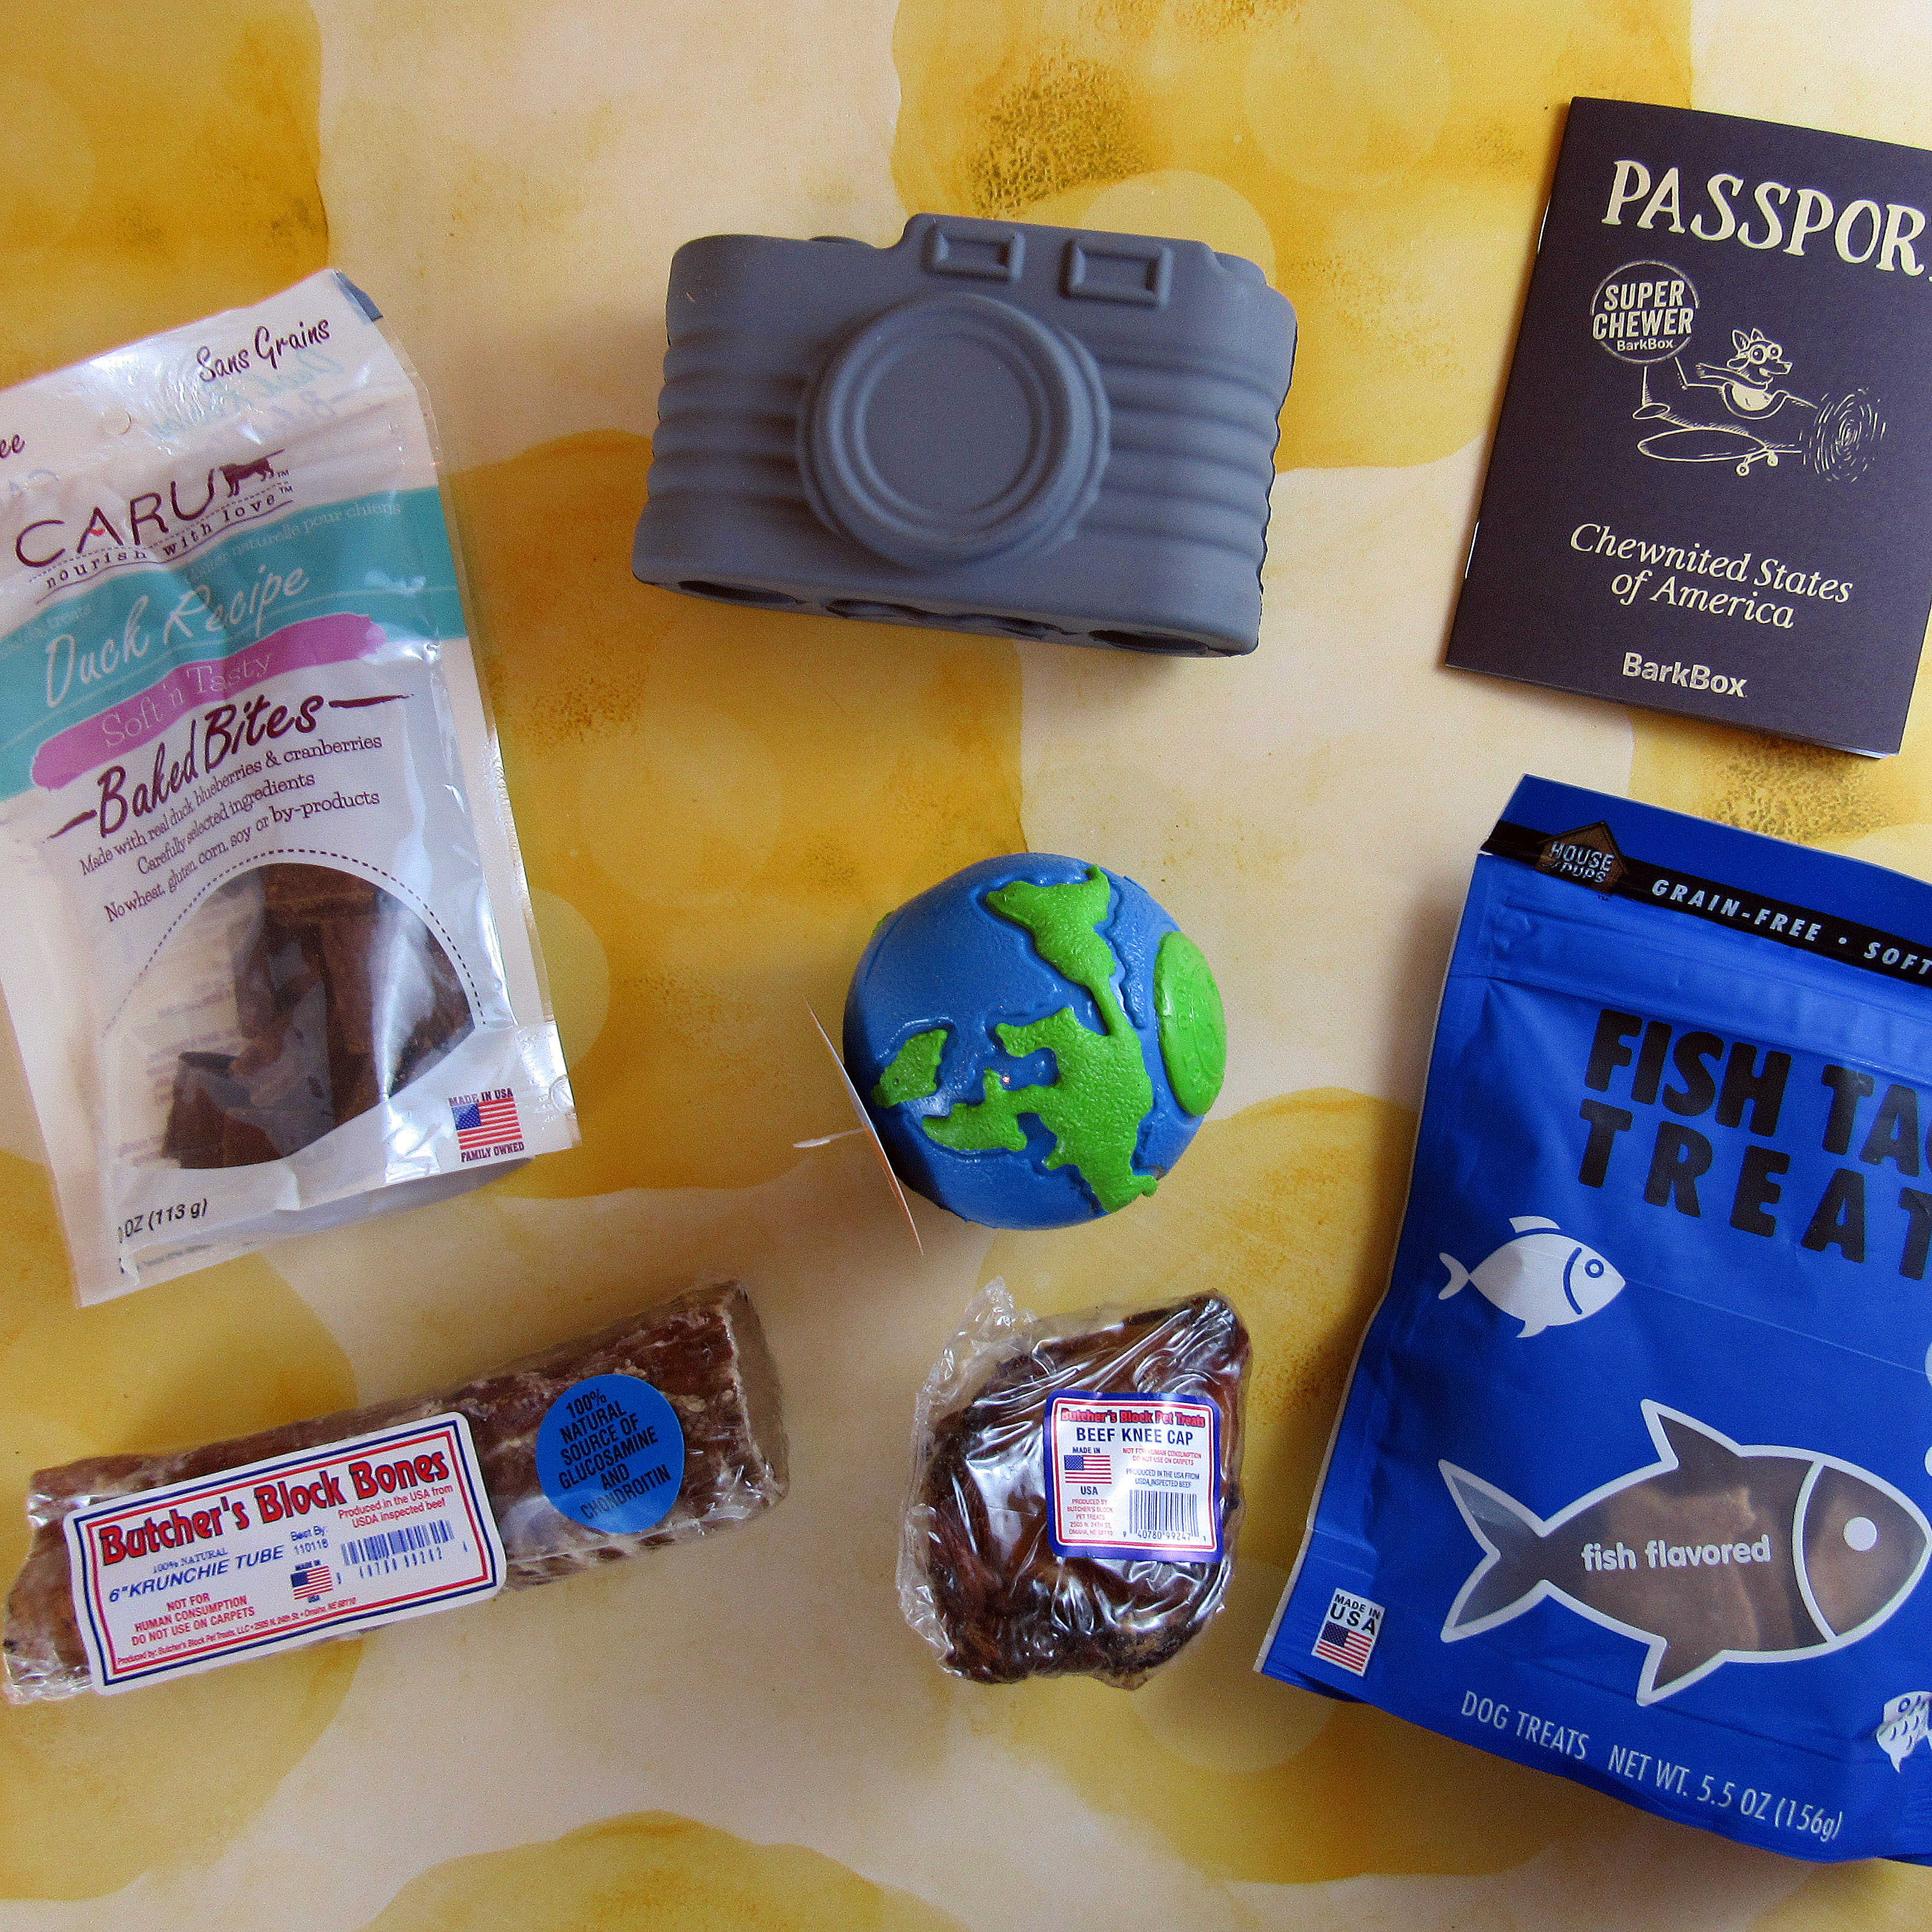 Barkbox January 2017 Subscription Box Review – Super Chewer